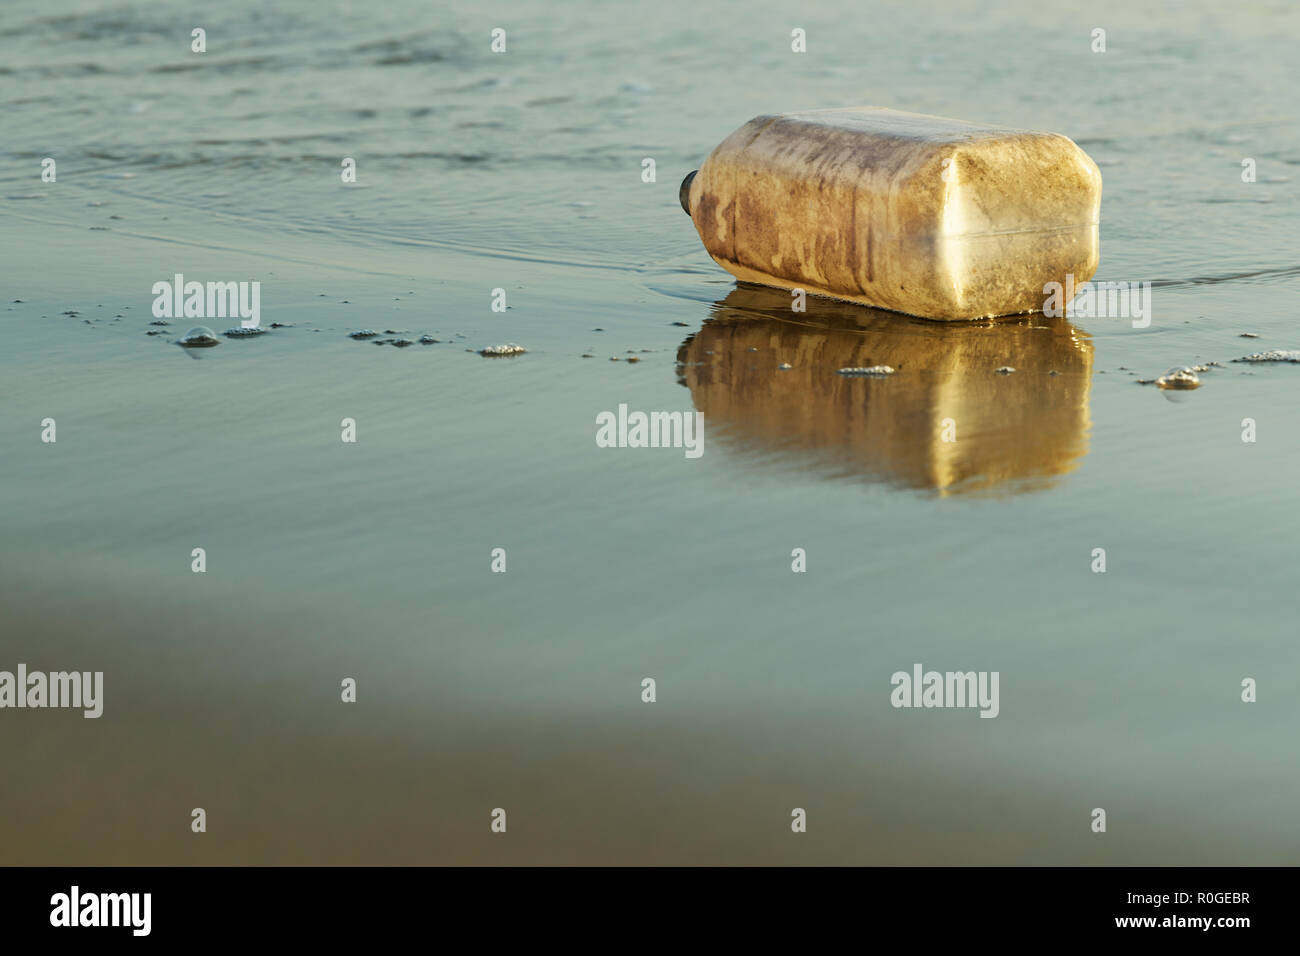 Dirty empty plastic container lying on its side where it washed out of the sea onto wet beach sand - Stock Image